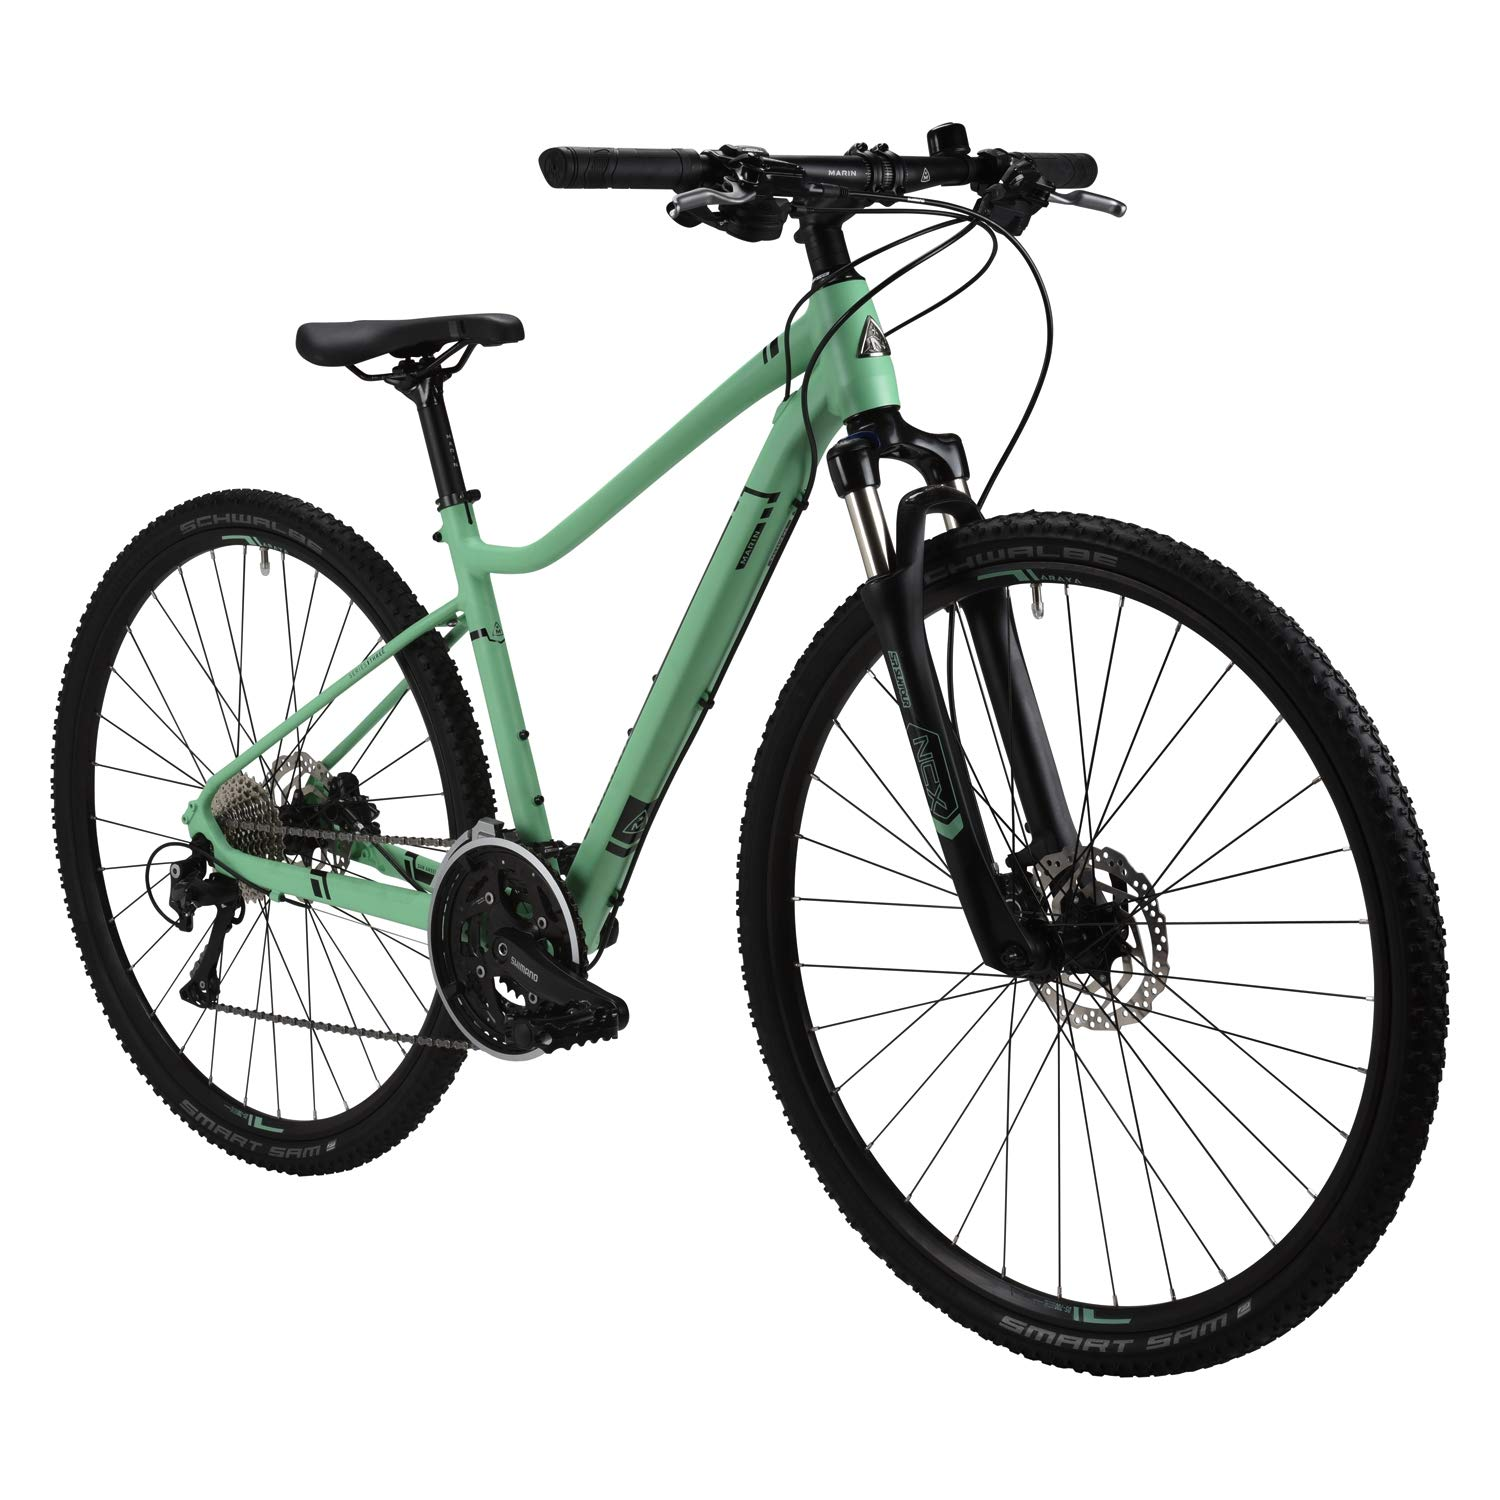 Marin San Anselmo ds4 Leレディーススポーツハイブリッドバイク – 2017パフォーマンスExclusive B06ZYLGBLN  TEAL BL 20